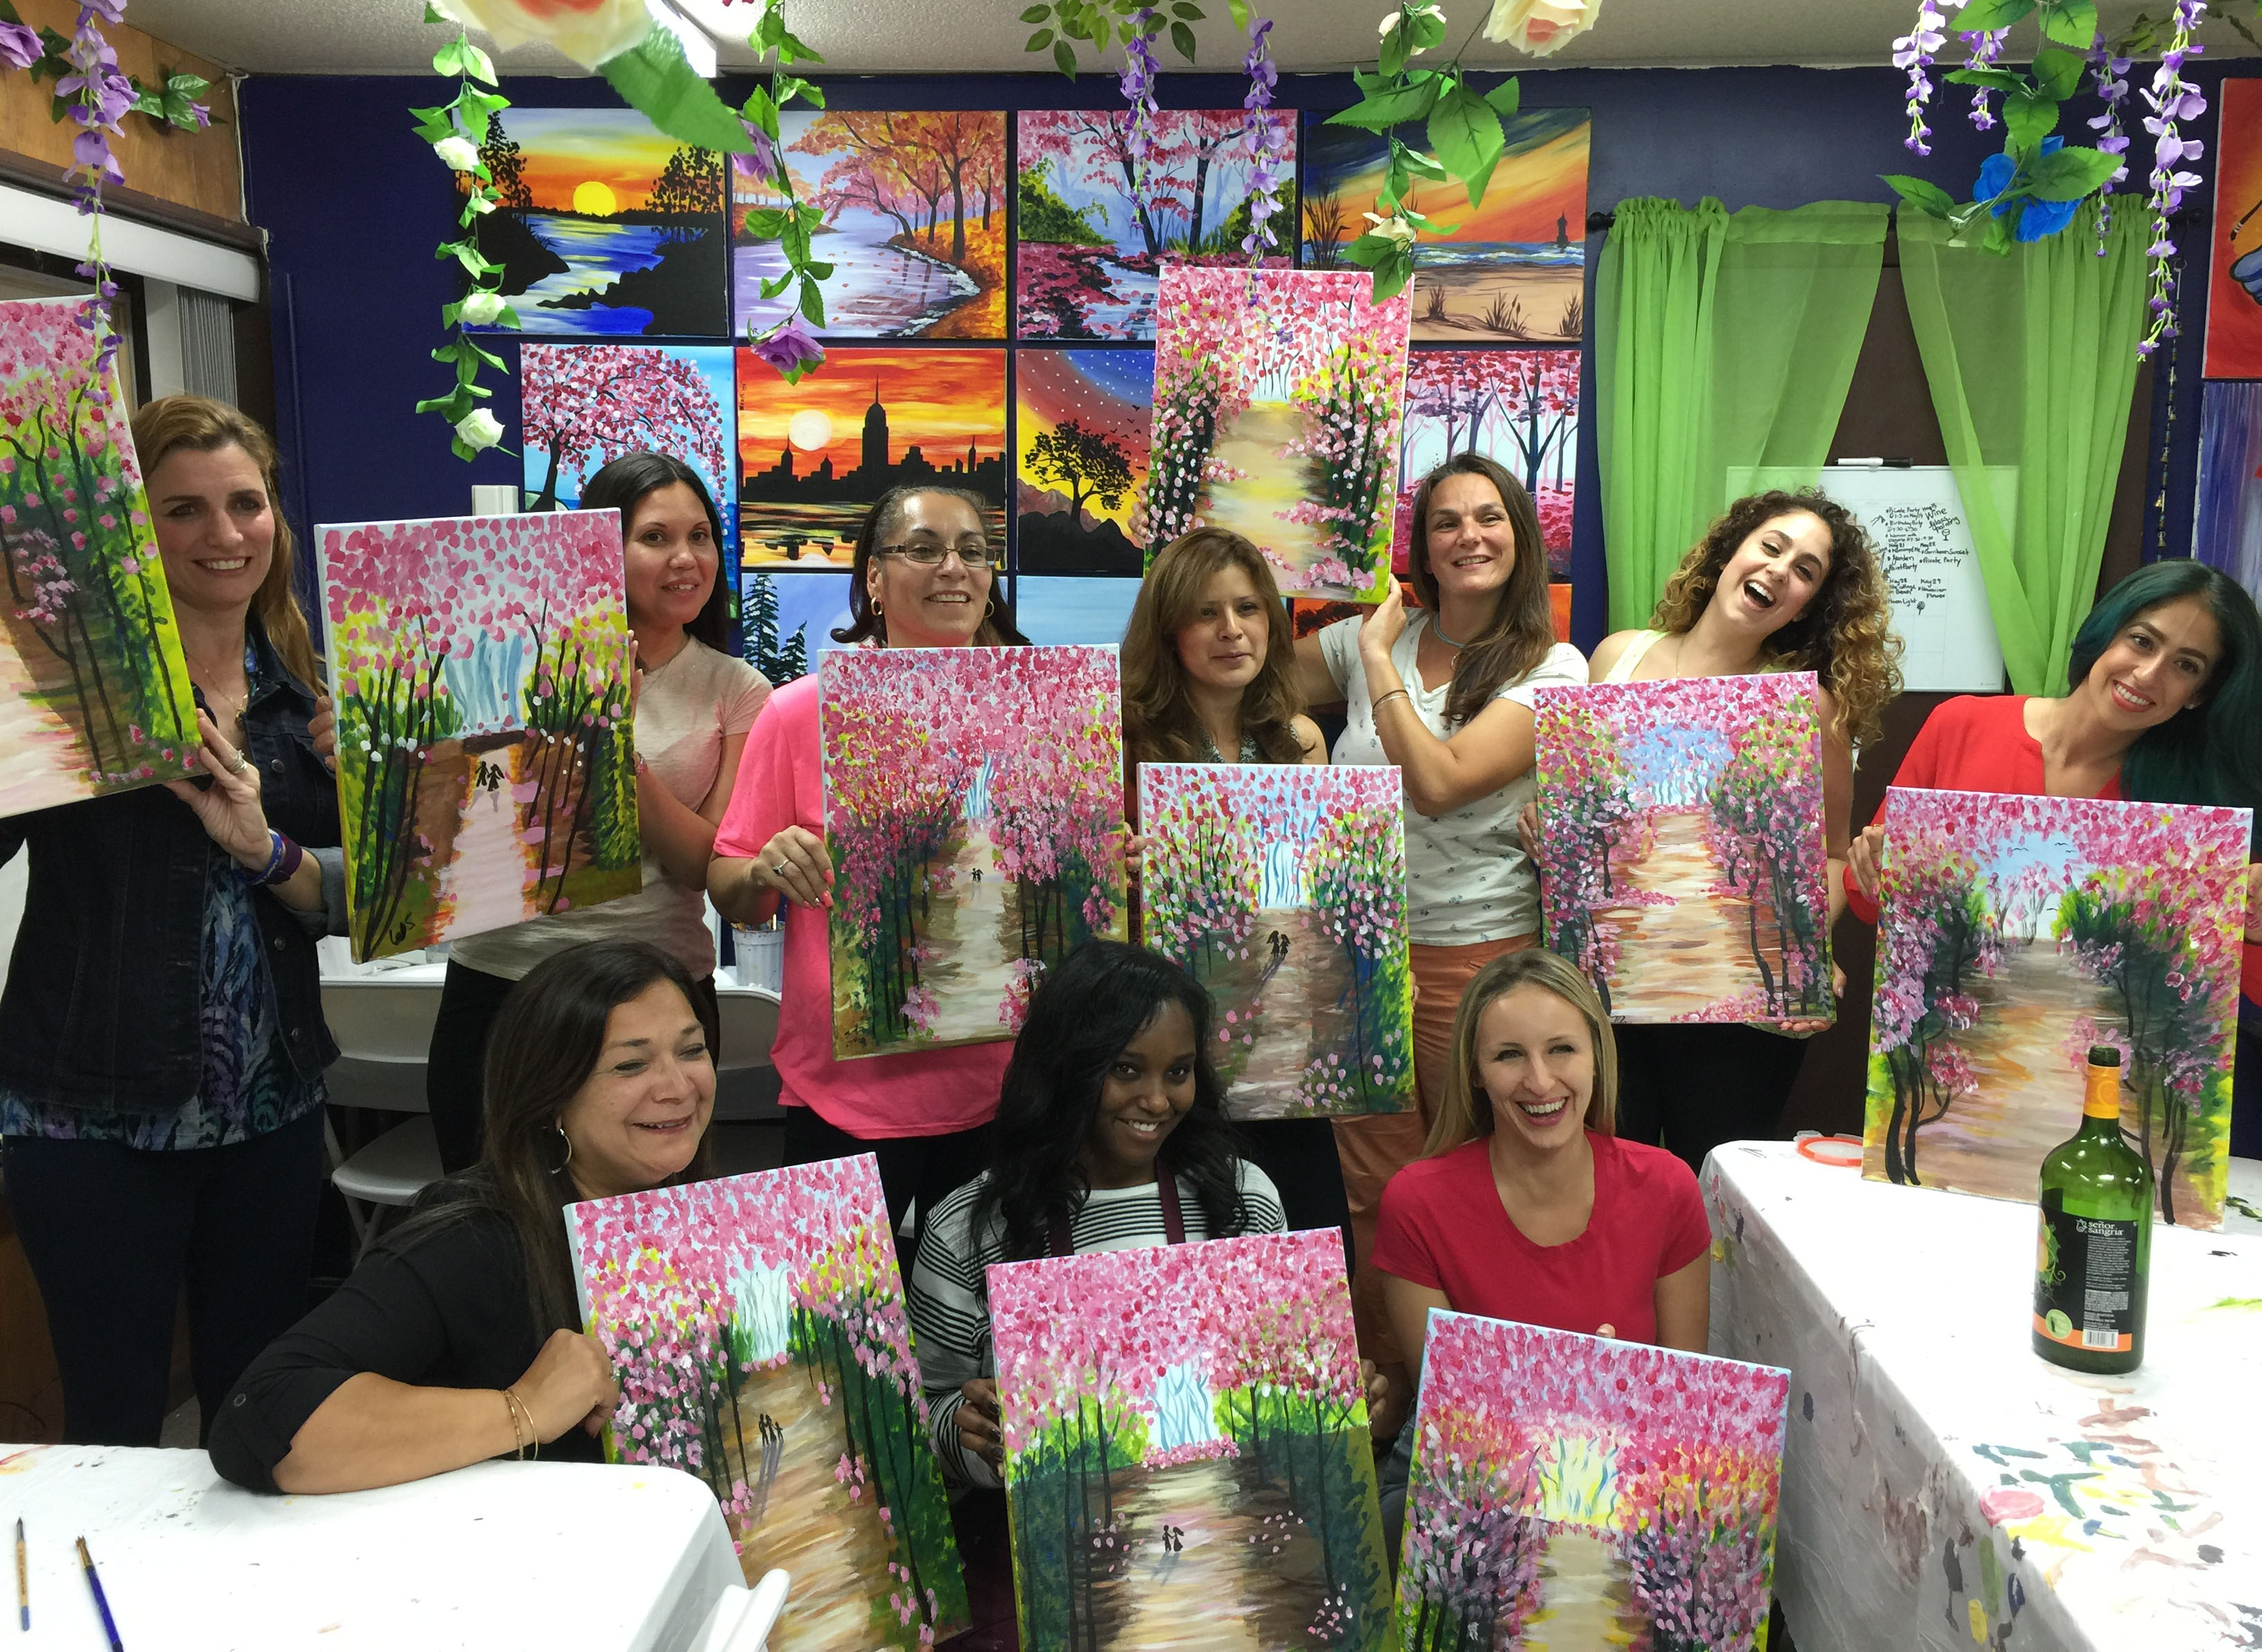 nj private painting party in new jersey paint fun studio